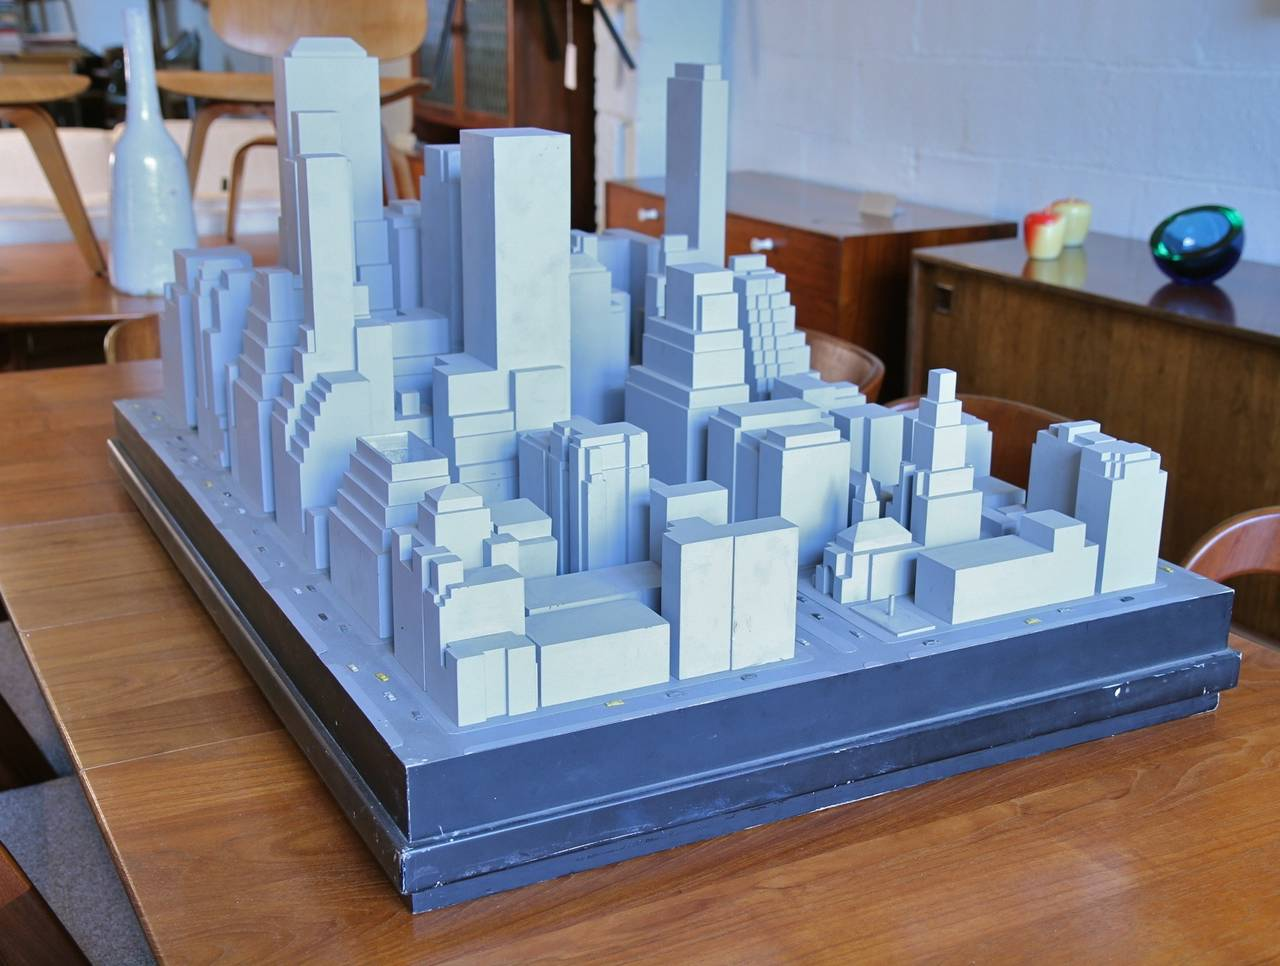 Scale model of mid town east manhattan at 1stdibs for Scale model furniture